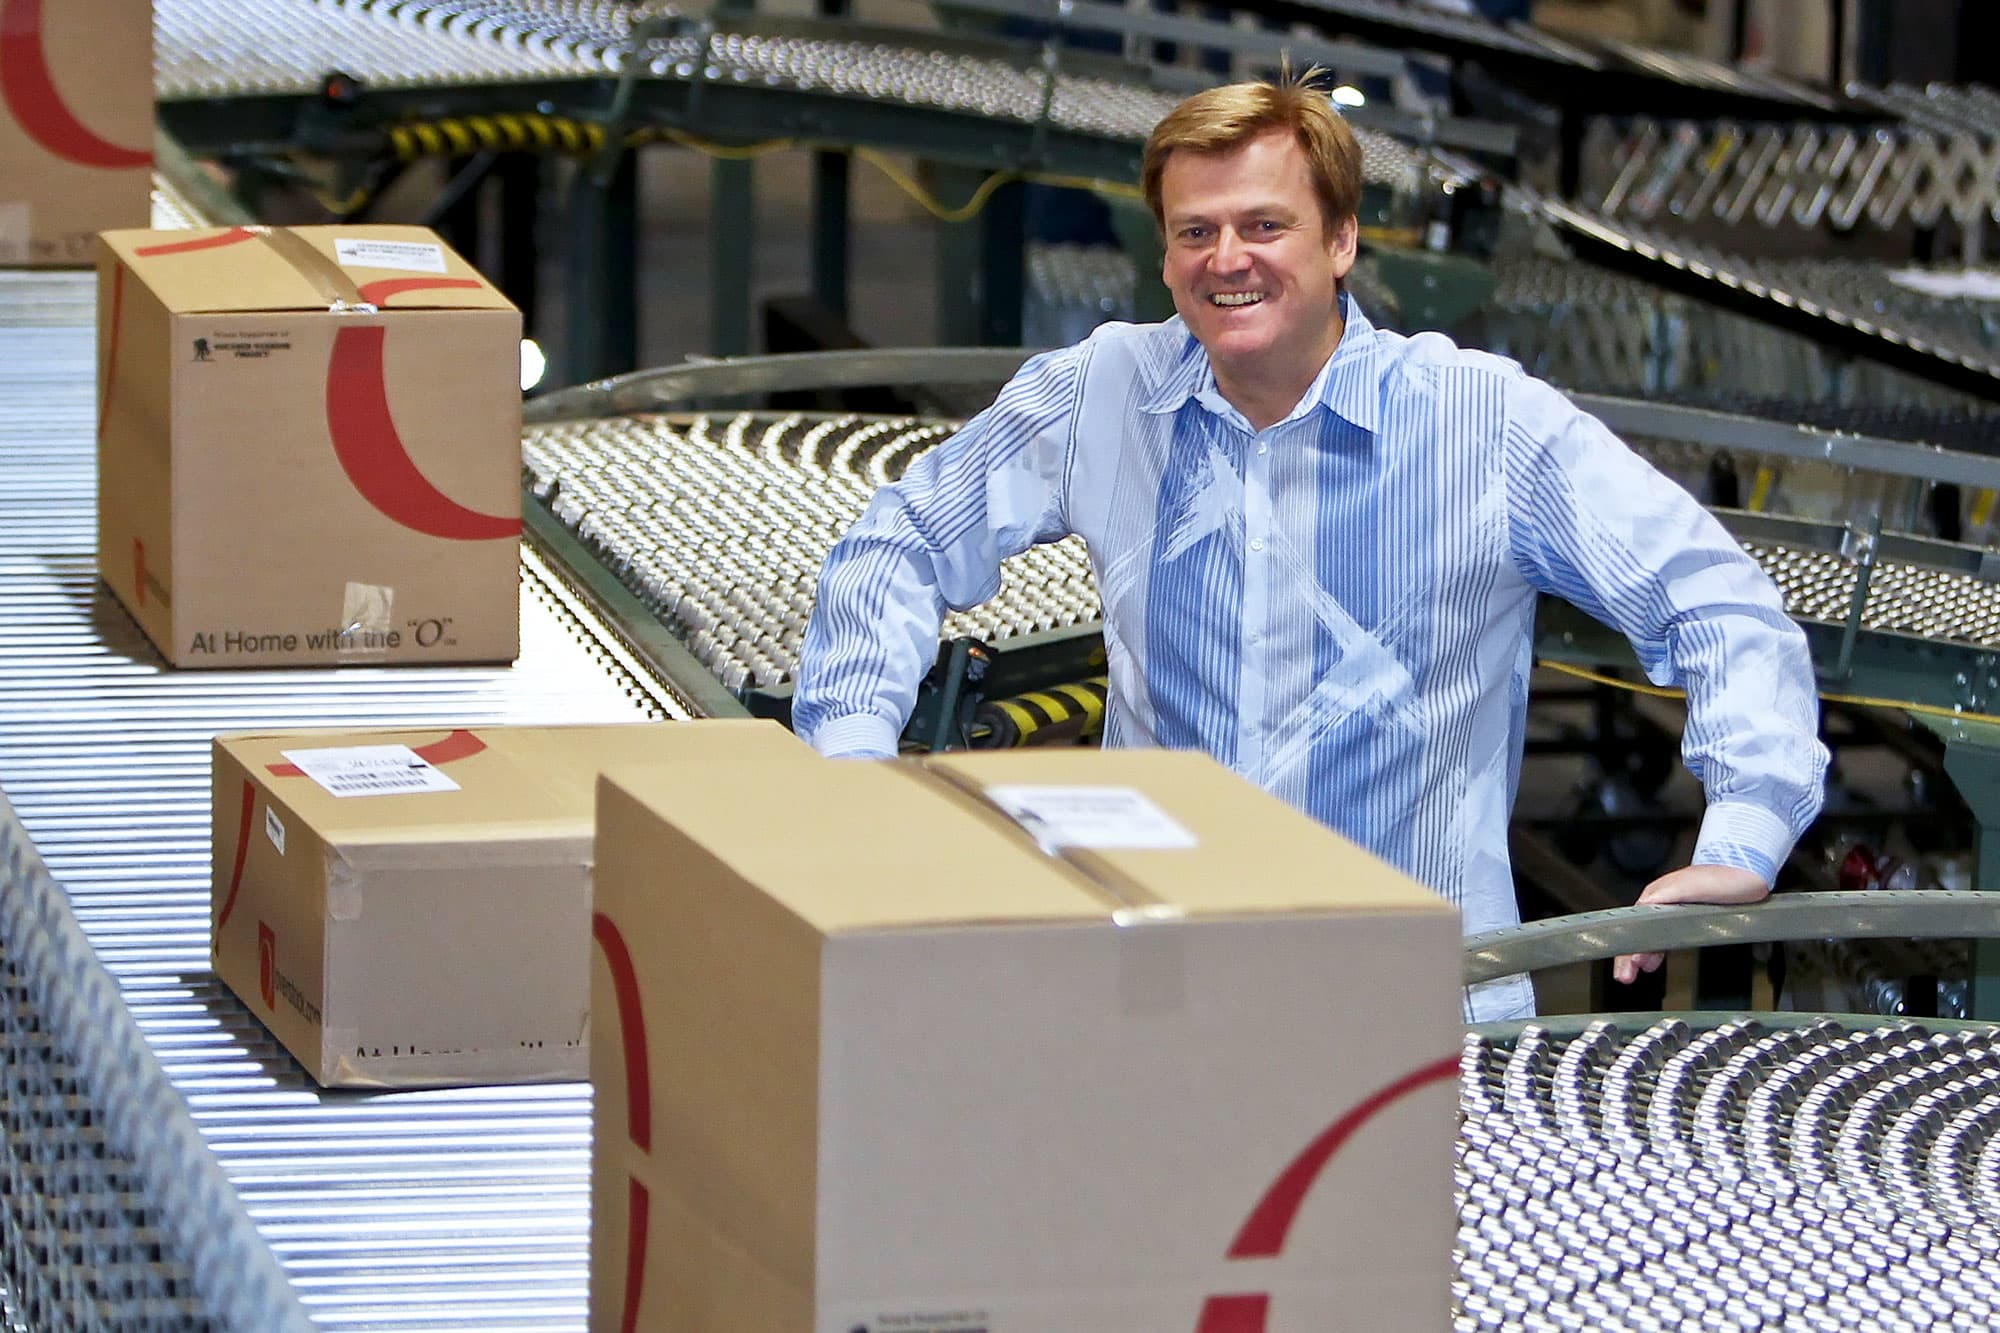 Overstock CEO Patrick Byrne resigns following 'deep state' comments, stock rises